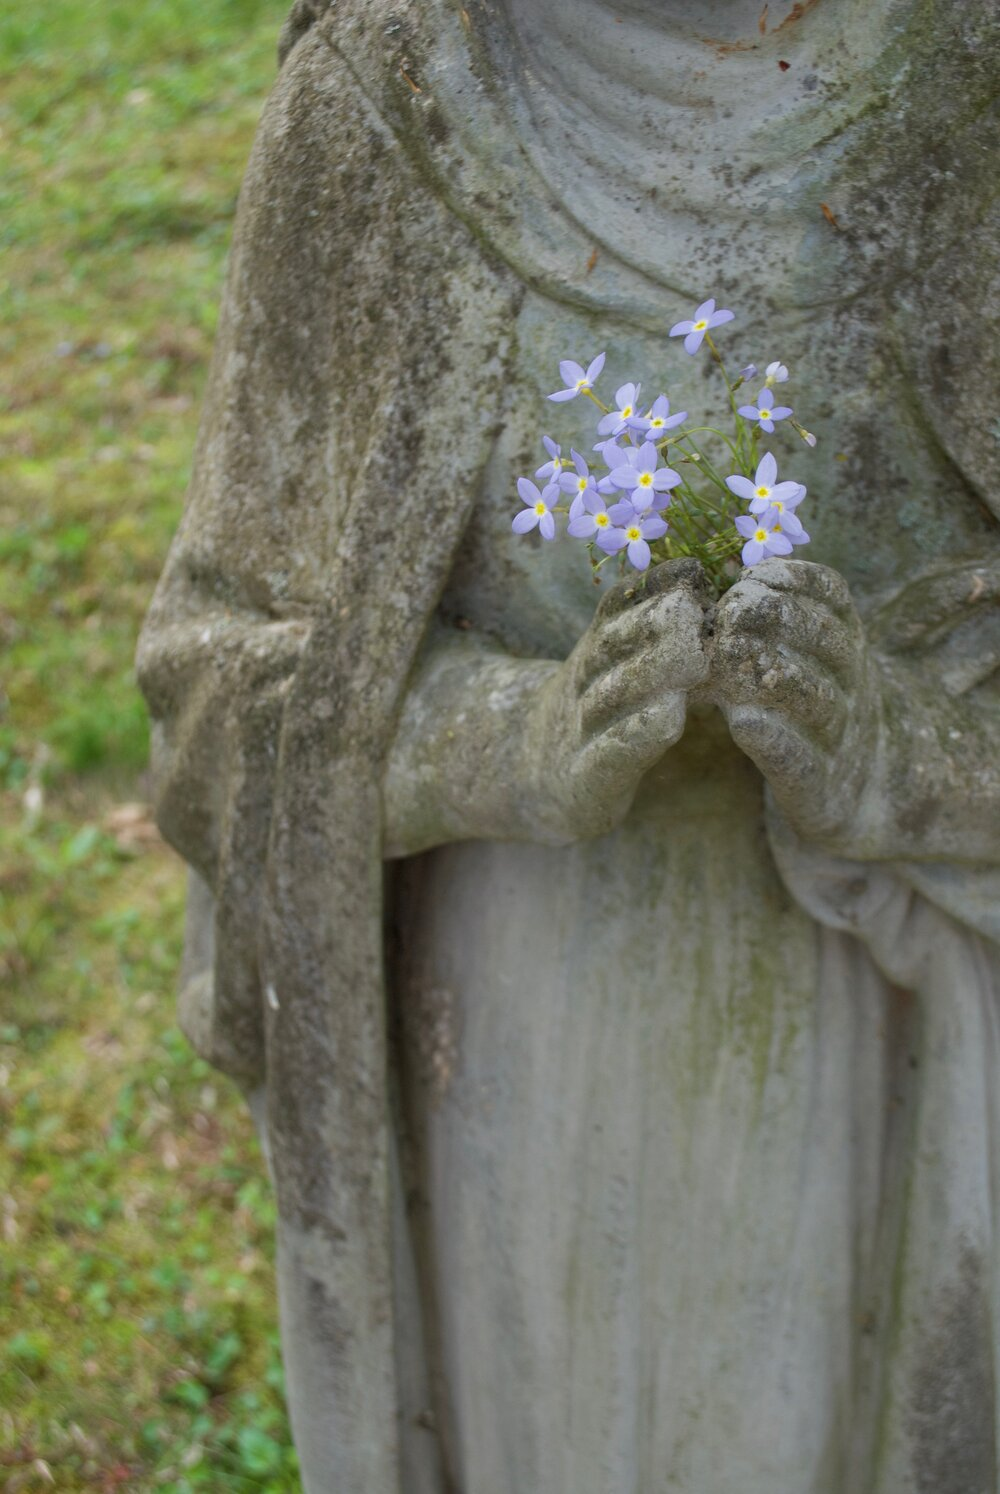 A detail of a cement sculpture, a headstone? The sculpture is close to the camera and its head and feet are beyond the edge of the frame. Its hands hover around a bunch of tiny purple flowers and the surrounding cement is faintly streaked green. The flowers and grass are contrasted by the weathered sculpture. Stone and stems are both natural objects, as are the rare earth minerals that power Tess's camera. Different scales of time are well represented here.